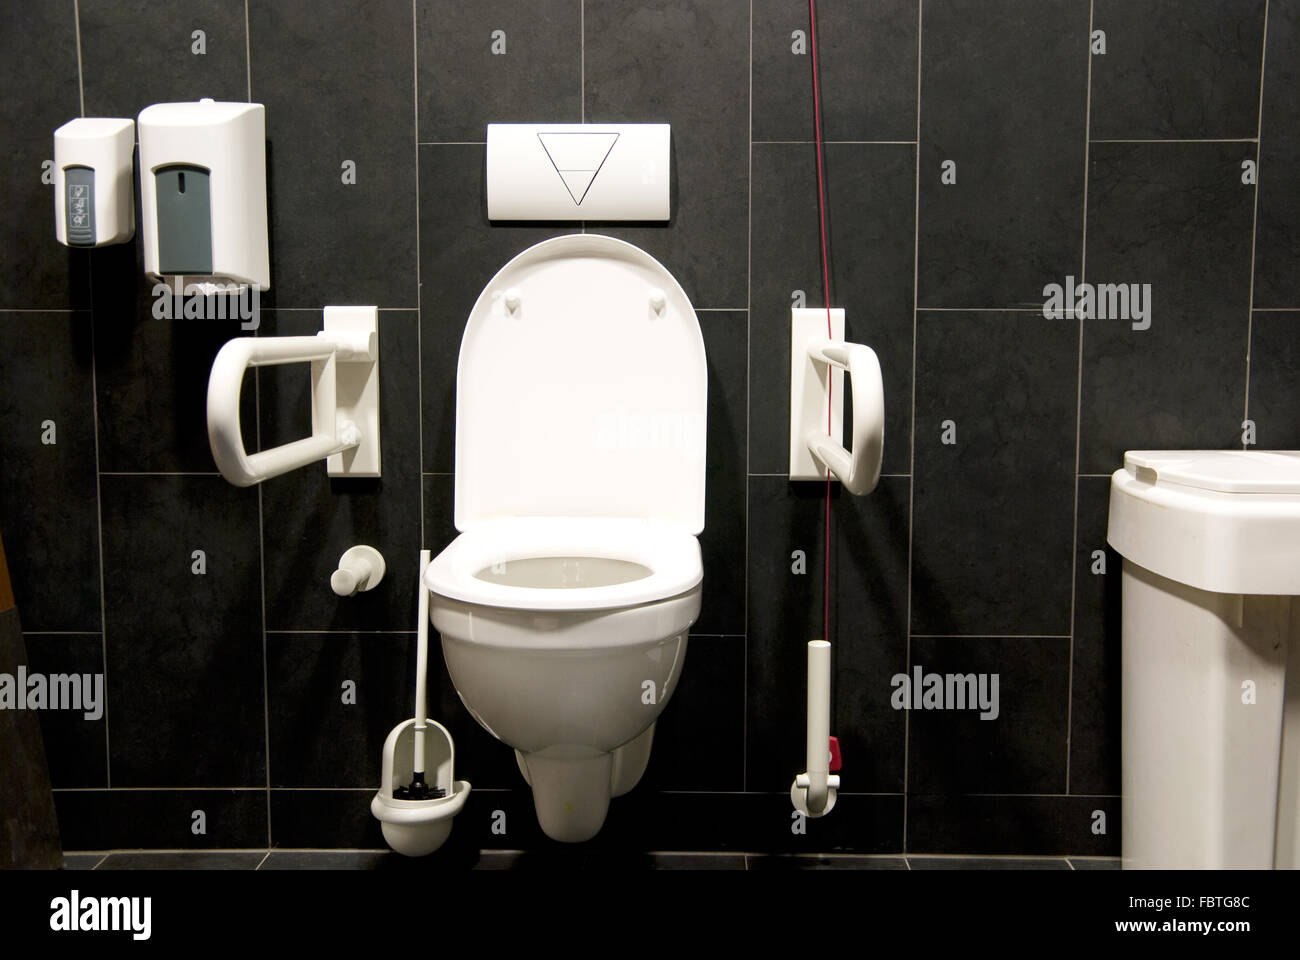 toilet disabled Stock Photo